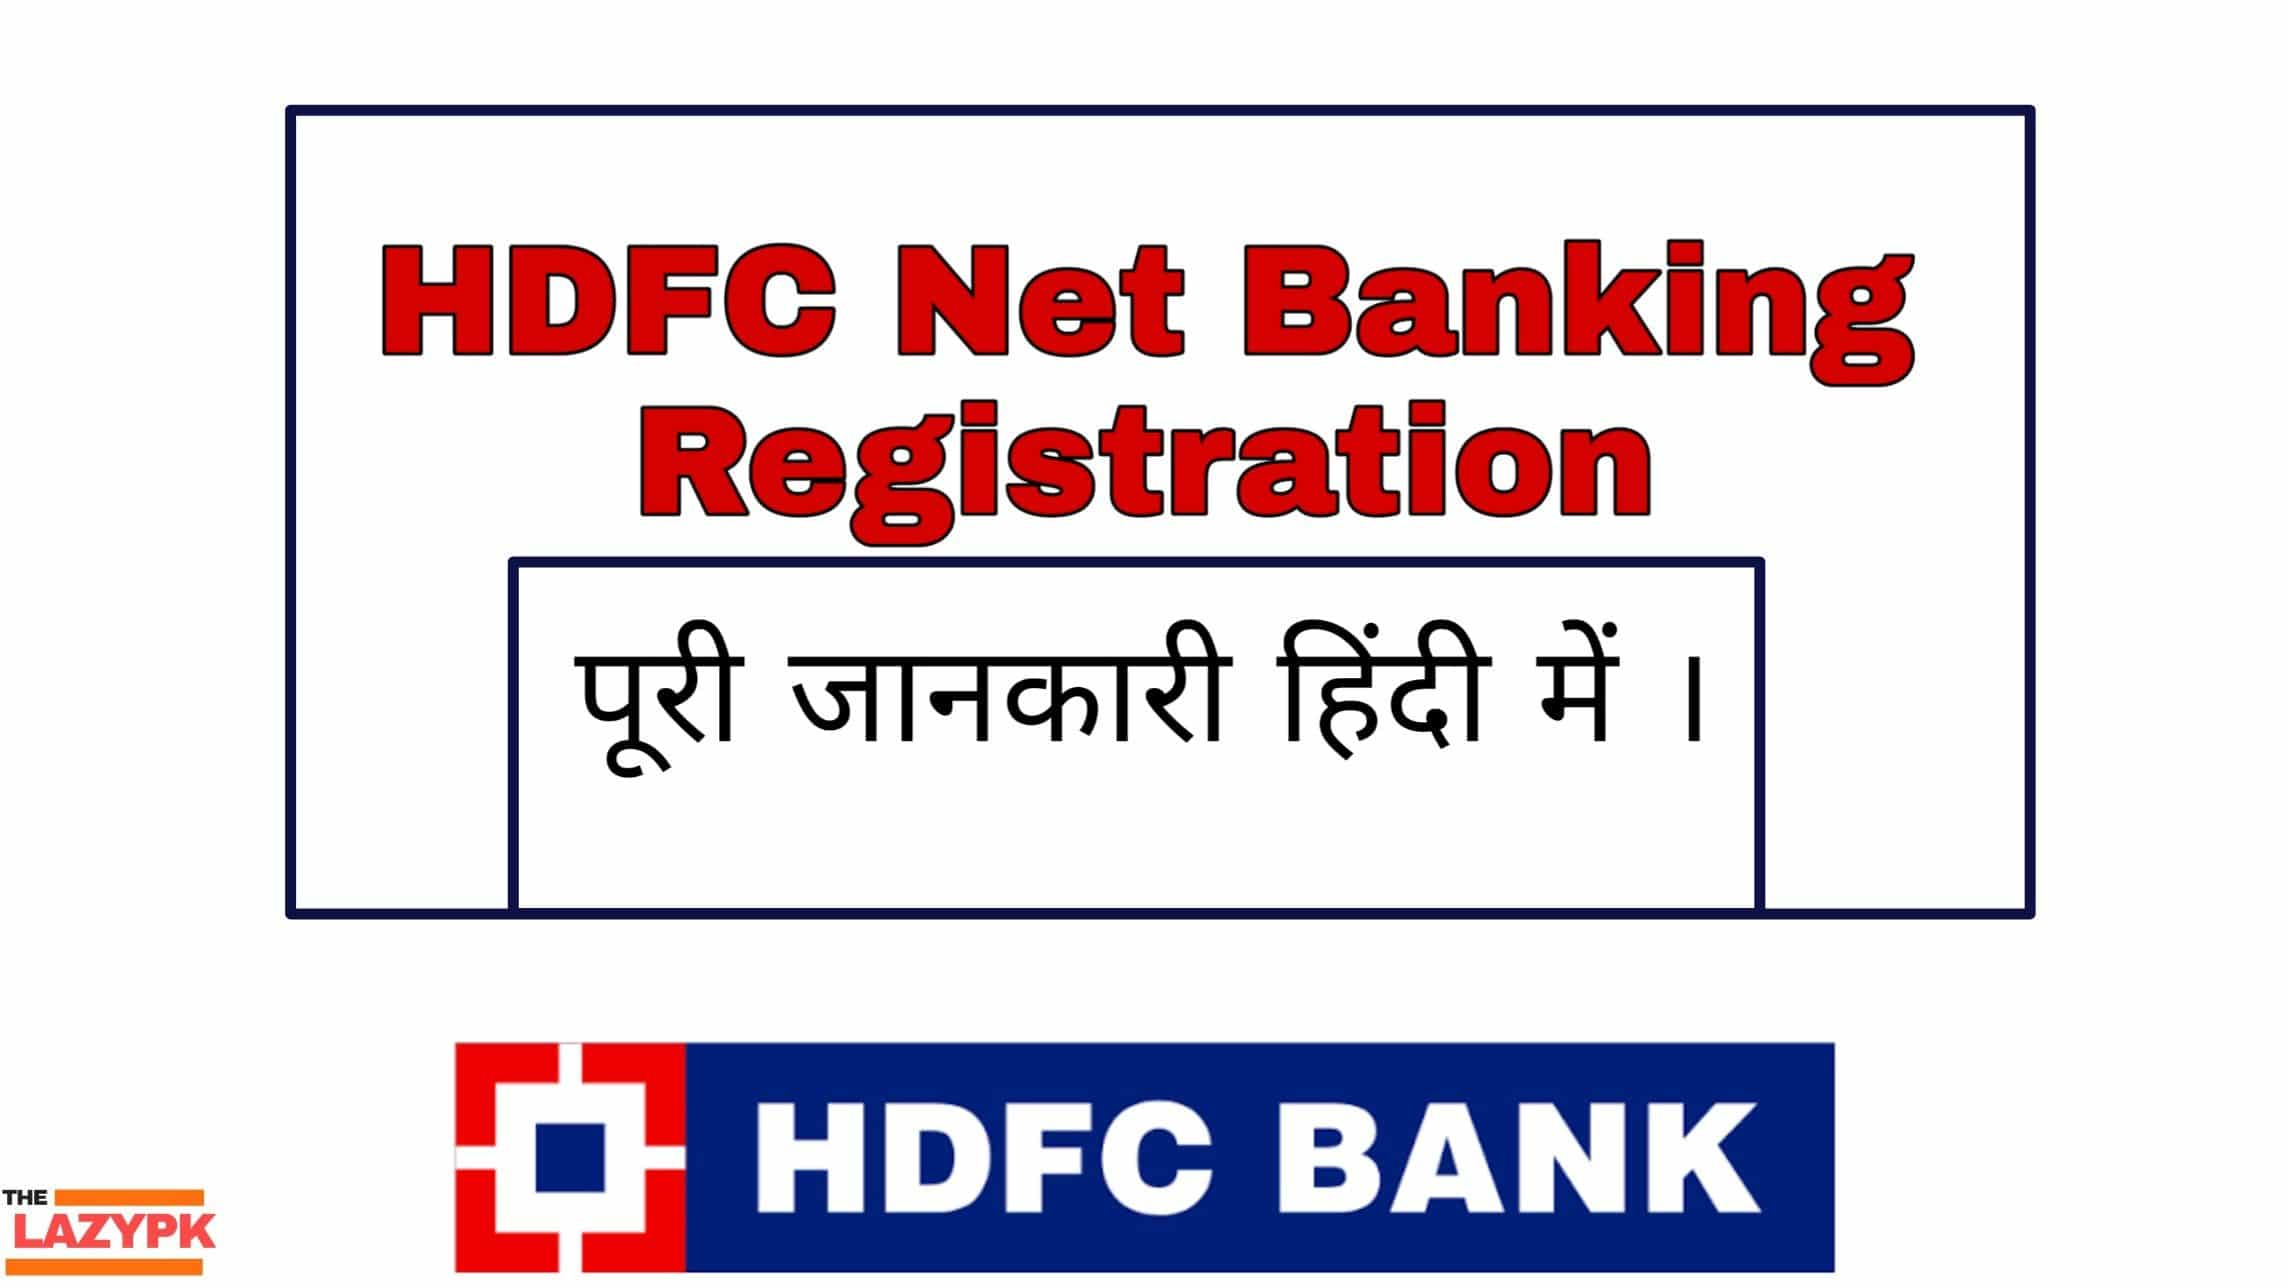 HDFC Net Banking Registration Hindi - HdfcNetBanking